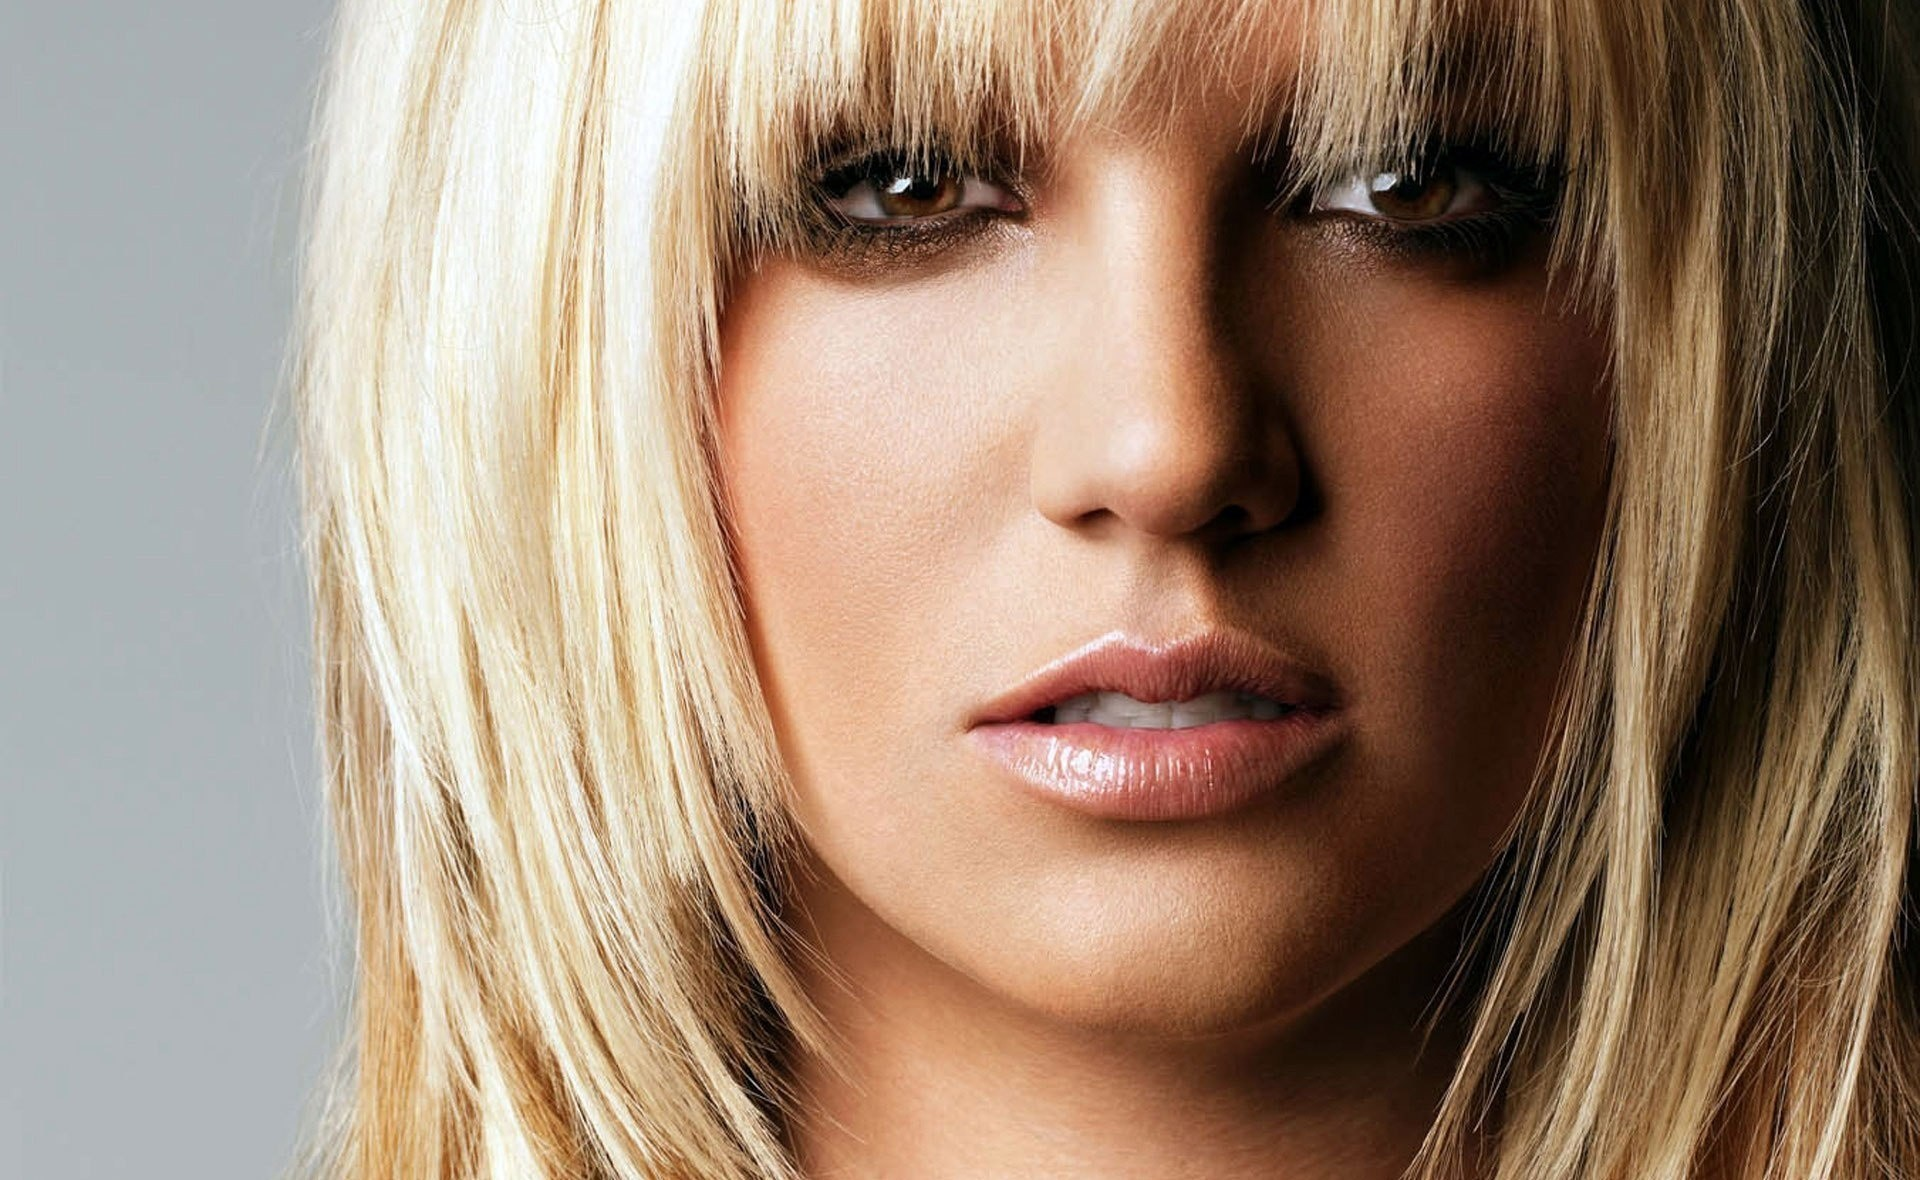 Britney Spears Wallpaper 16